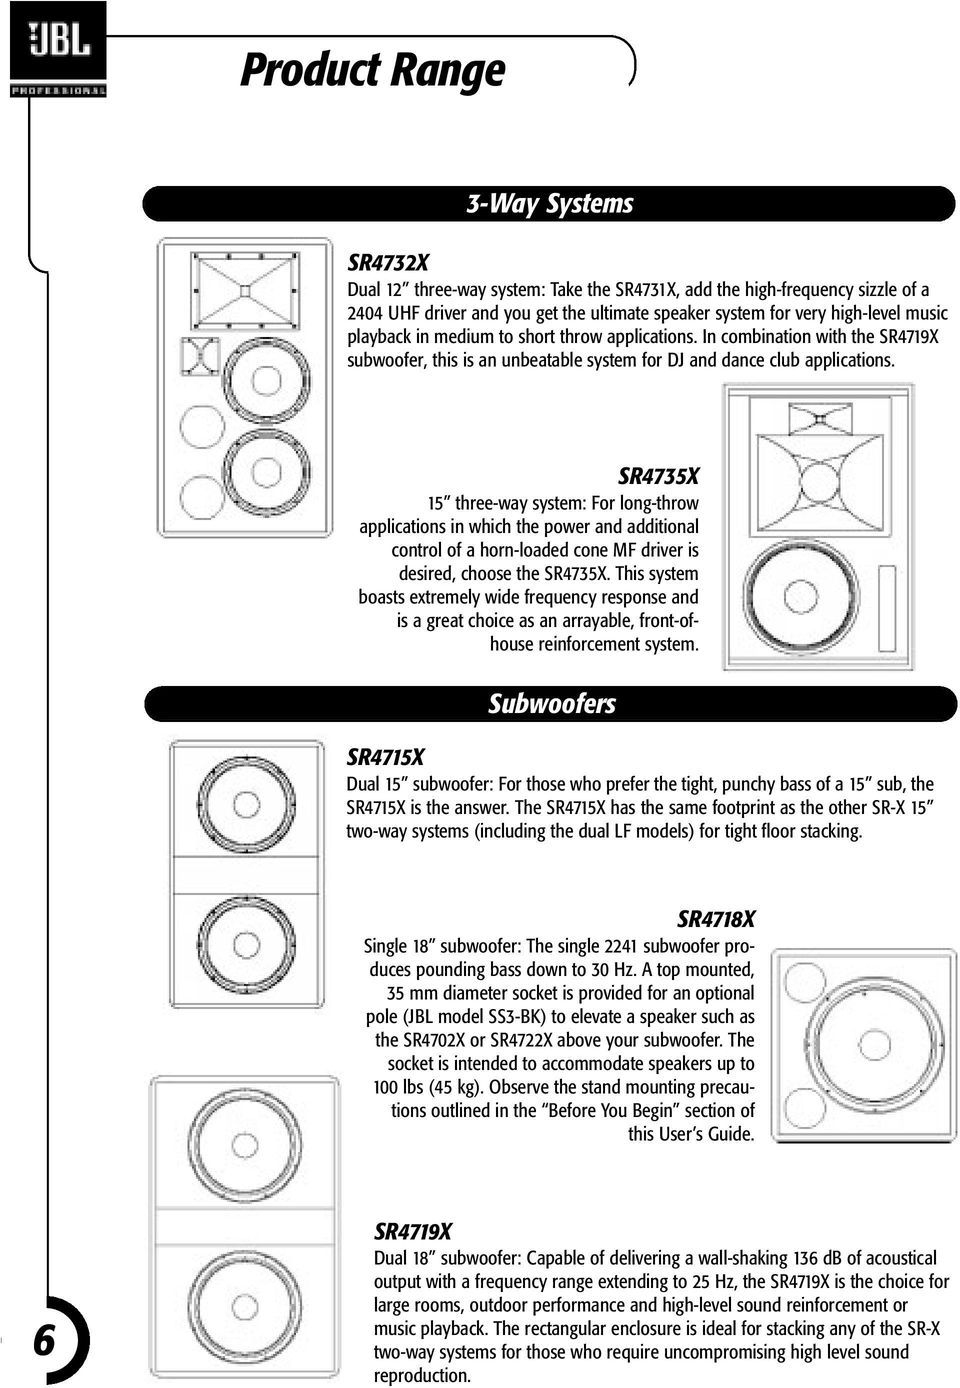 Jbl Sr X User S Guide Pdf What Are Threeway Speaker Crossovers Crossover Networks Briefly Sr4735x 15 Three Way System For Long Throw Applications In Which The Power